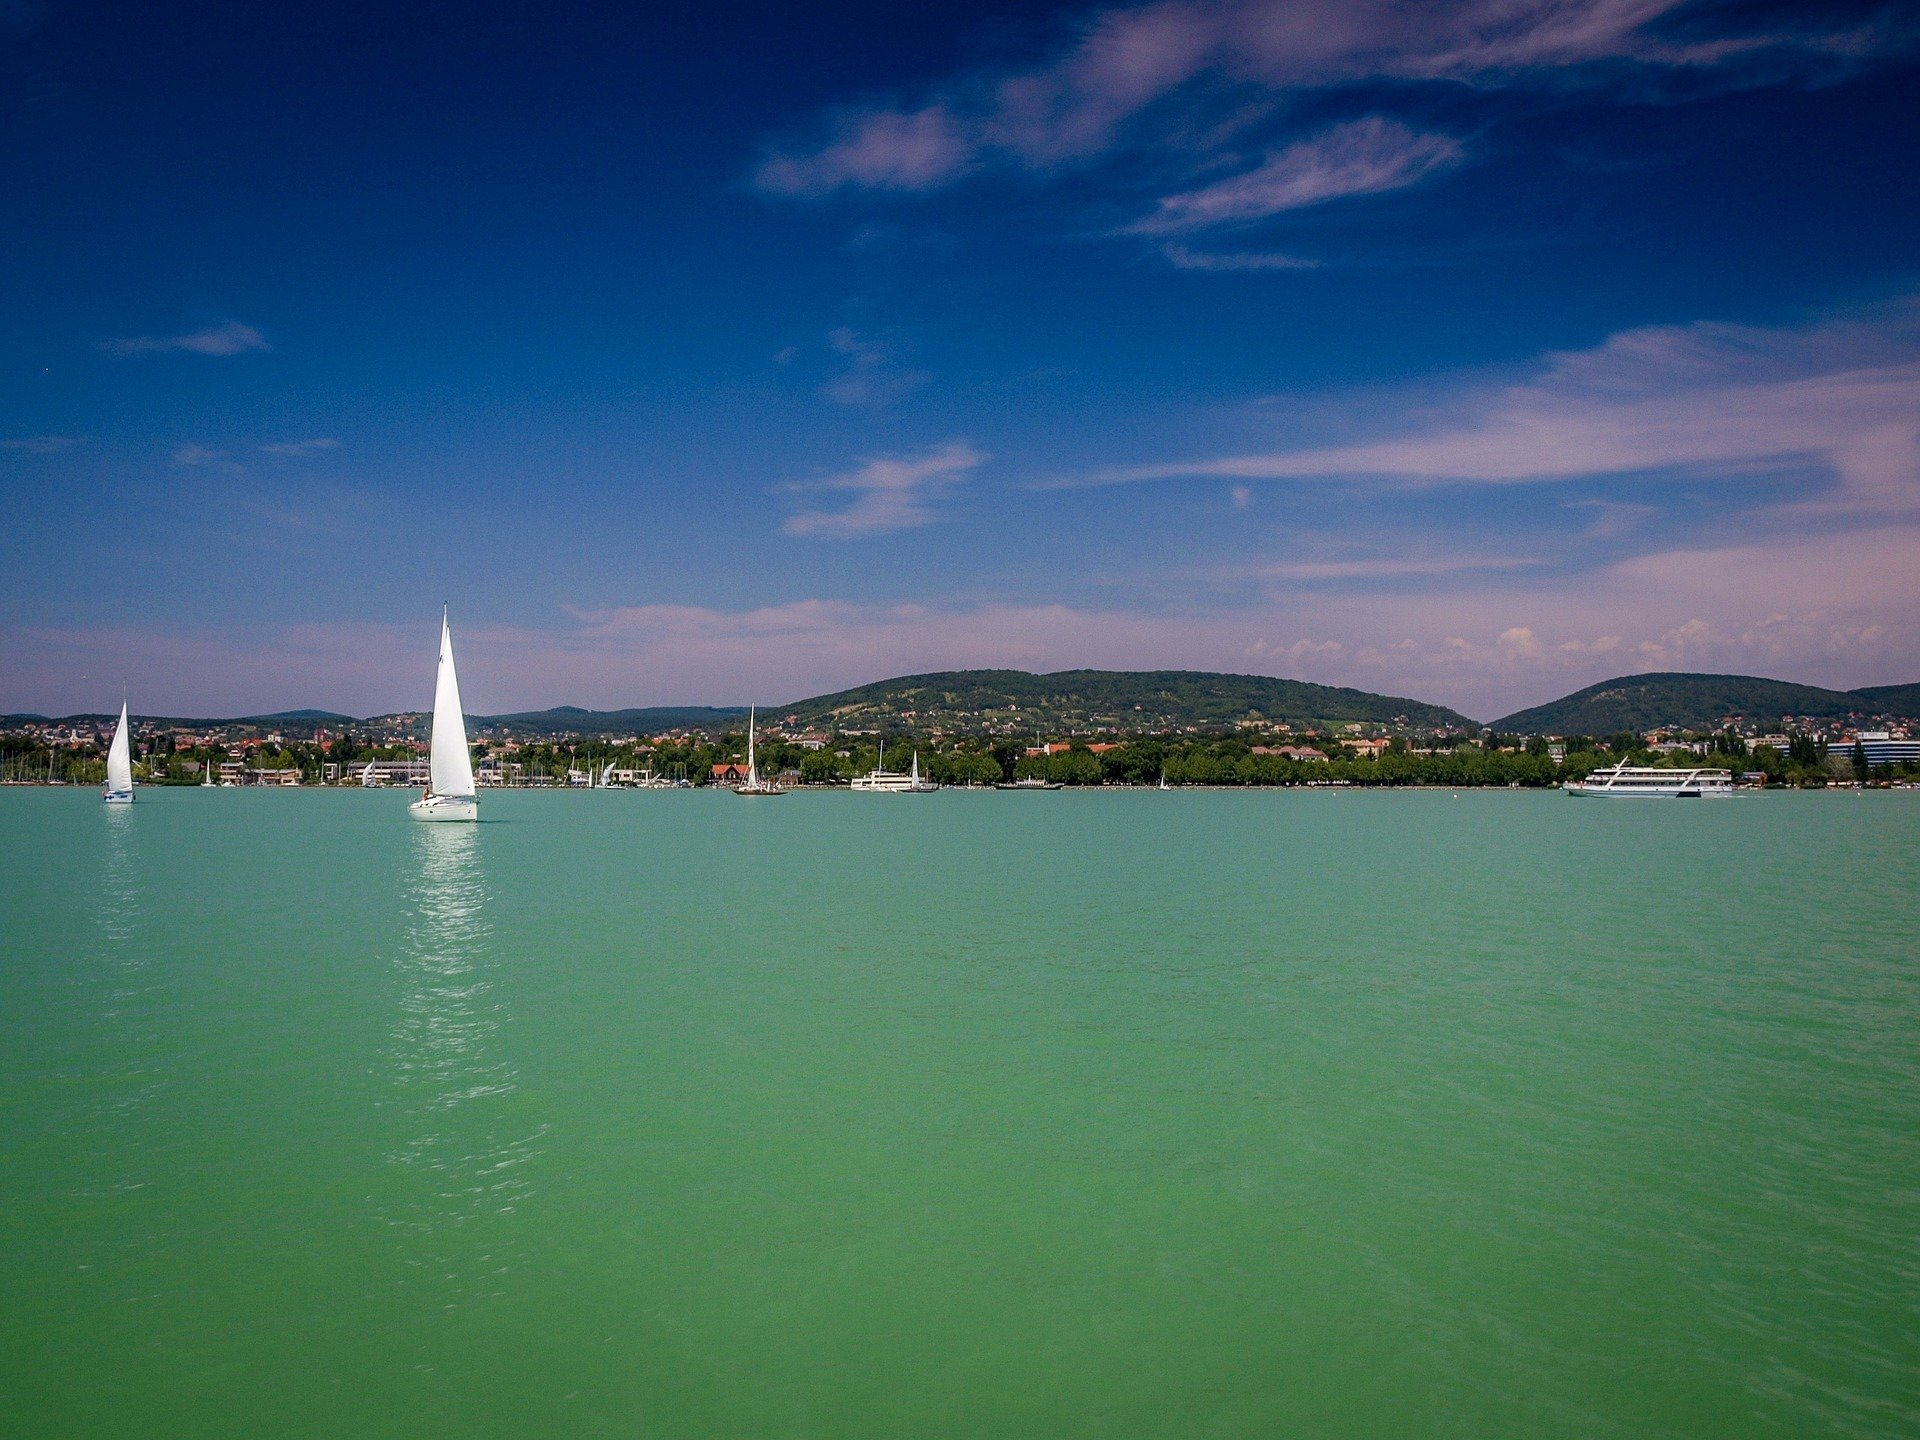 The secret treasure of Balatonfüred